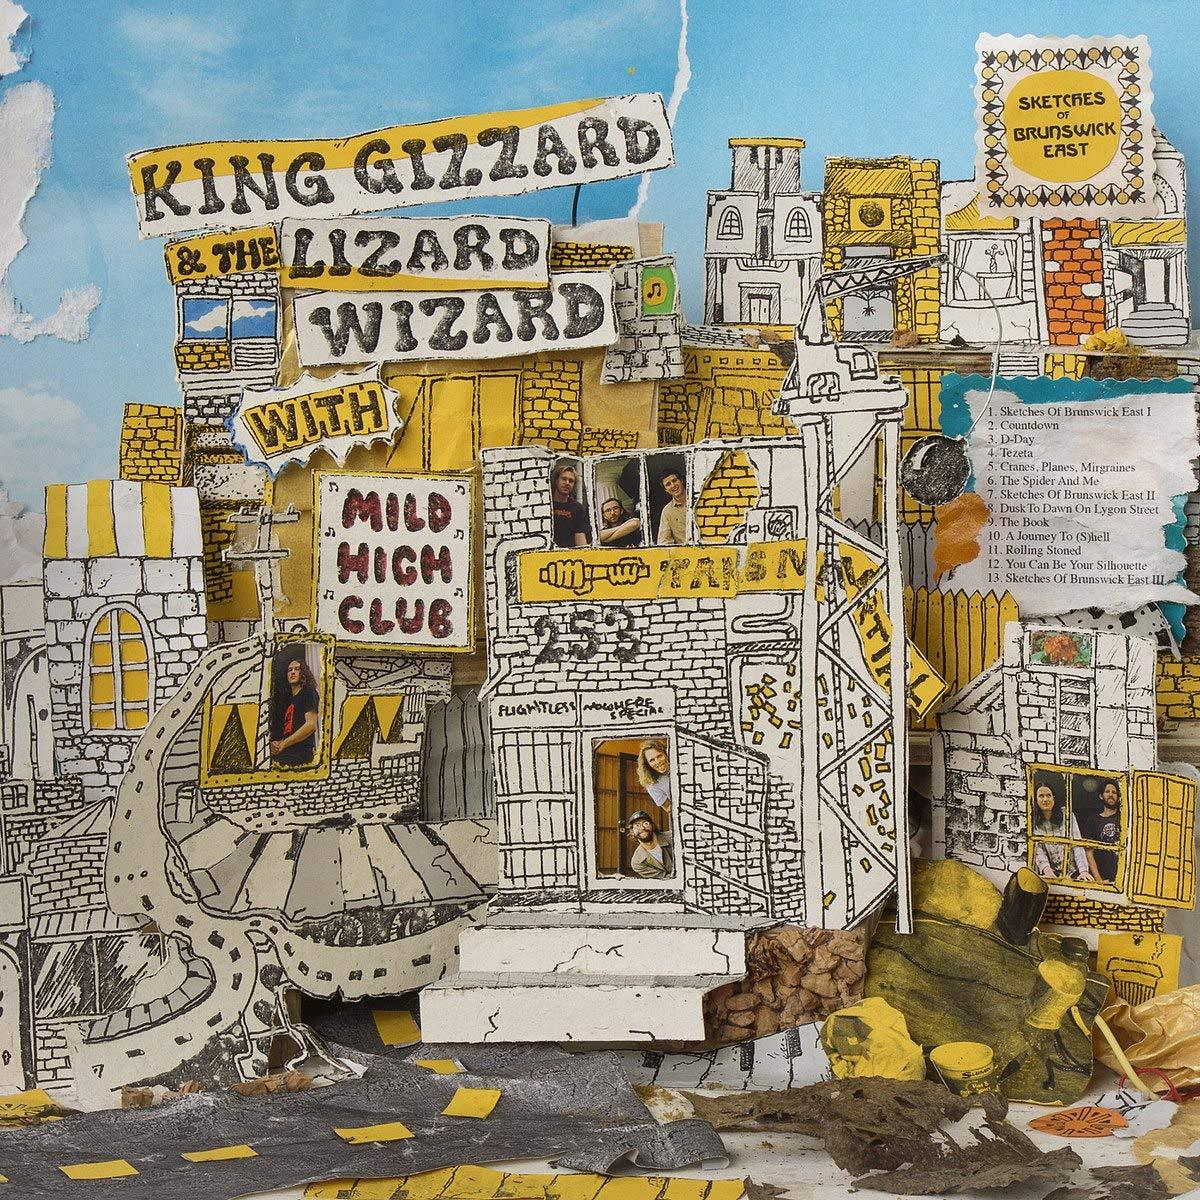 King Gizzard & The Lizard Wizard/Mild High Club - Sketches Of Brunswick East [LP] (Yellow with Blue Splatter Vinyl) - Urban Vinyl | Records, Headphones, and more.